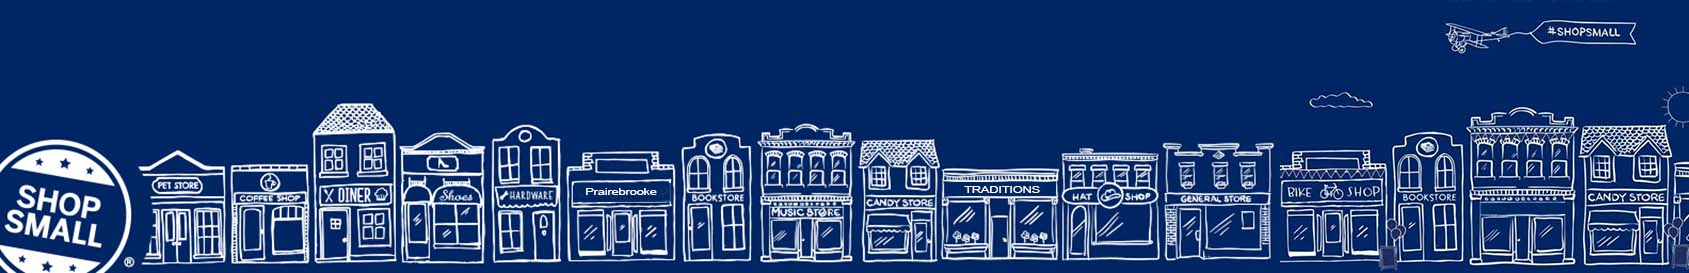 shop downtown overland park and learn about small town usa